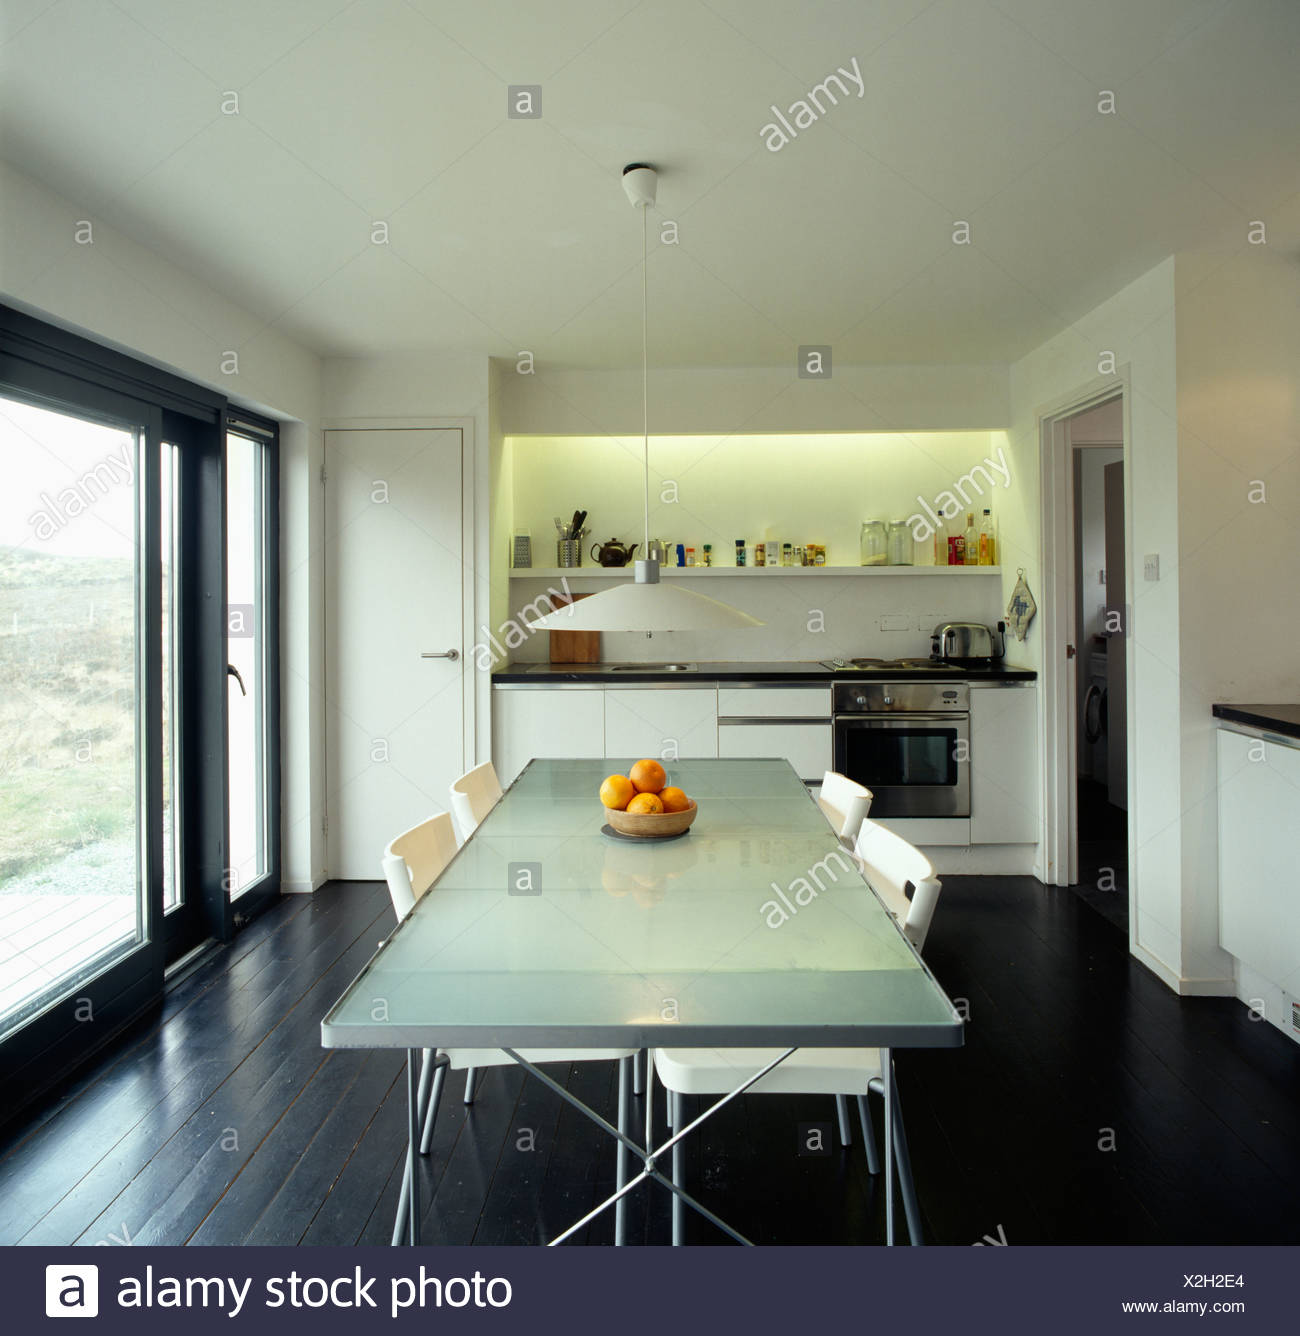 White Chairs At Opaque Glass Topped Table In Modern Kitchen Dining